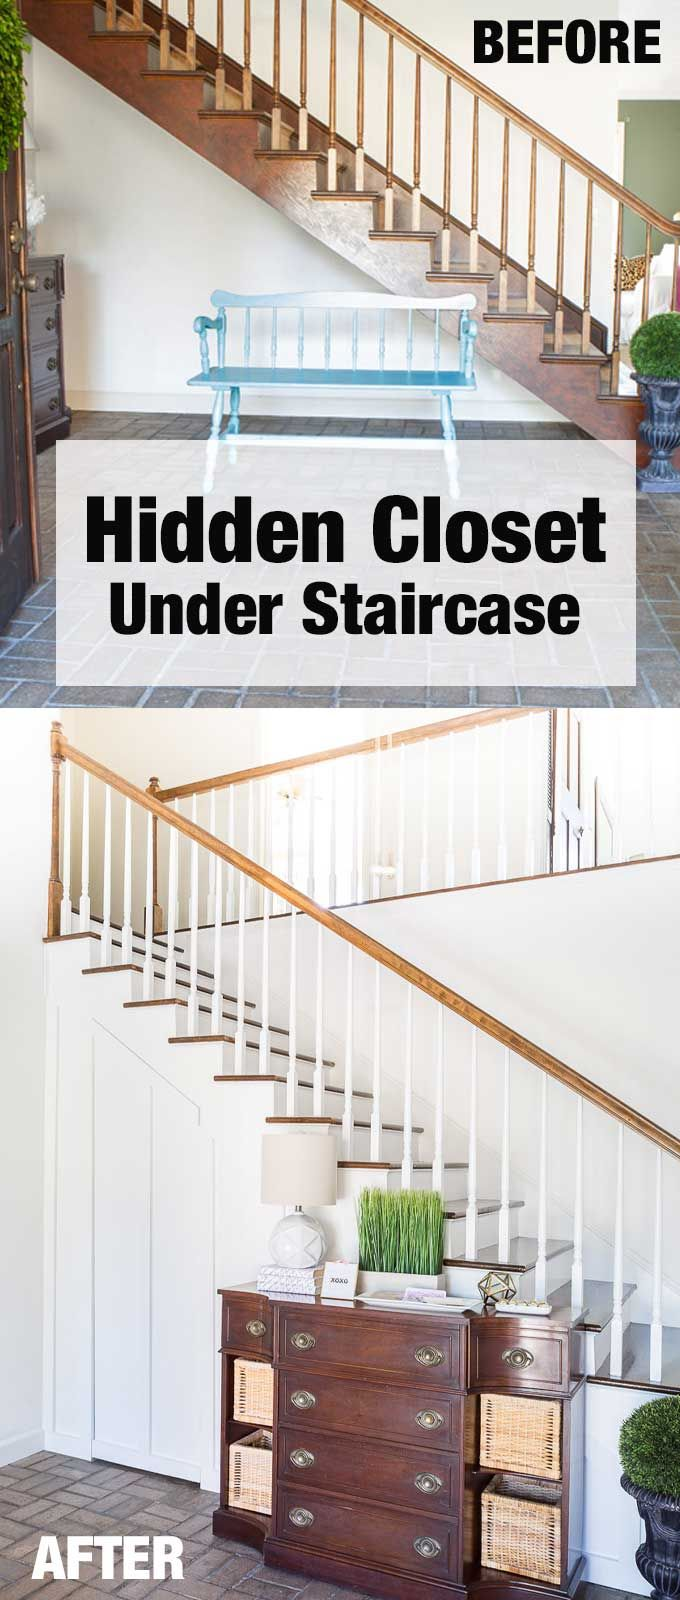 Best How To Add A Closet With A Hidden Door Under A Staircase 400 x 300